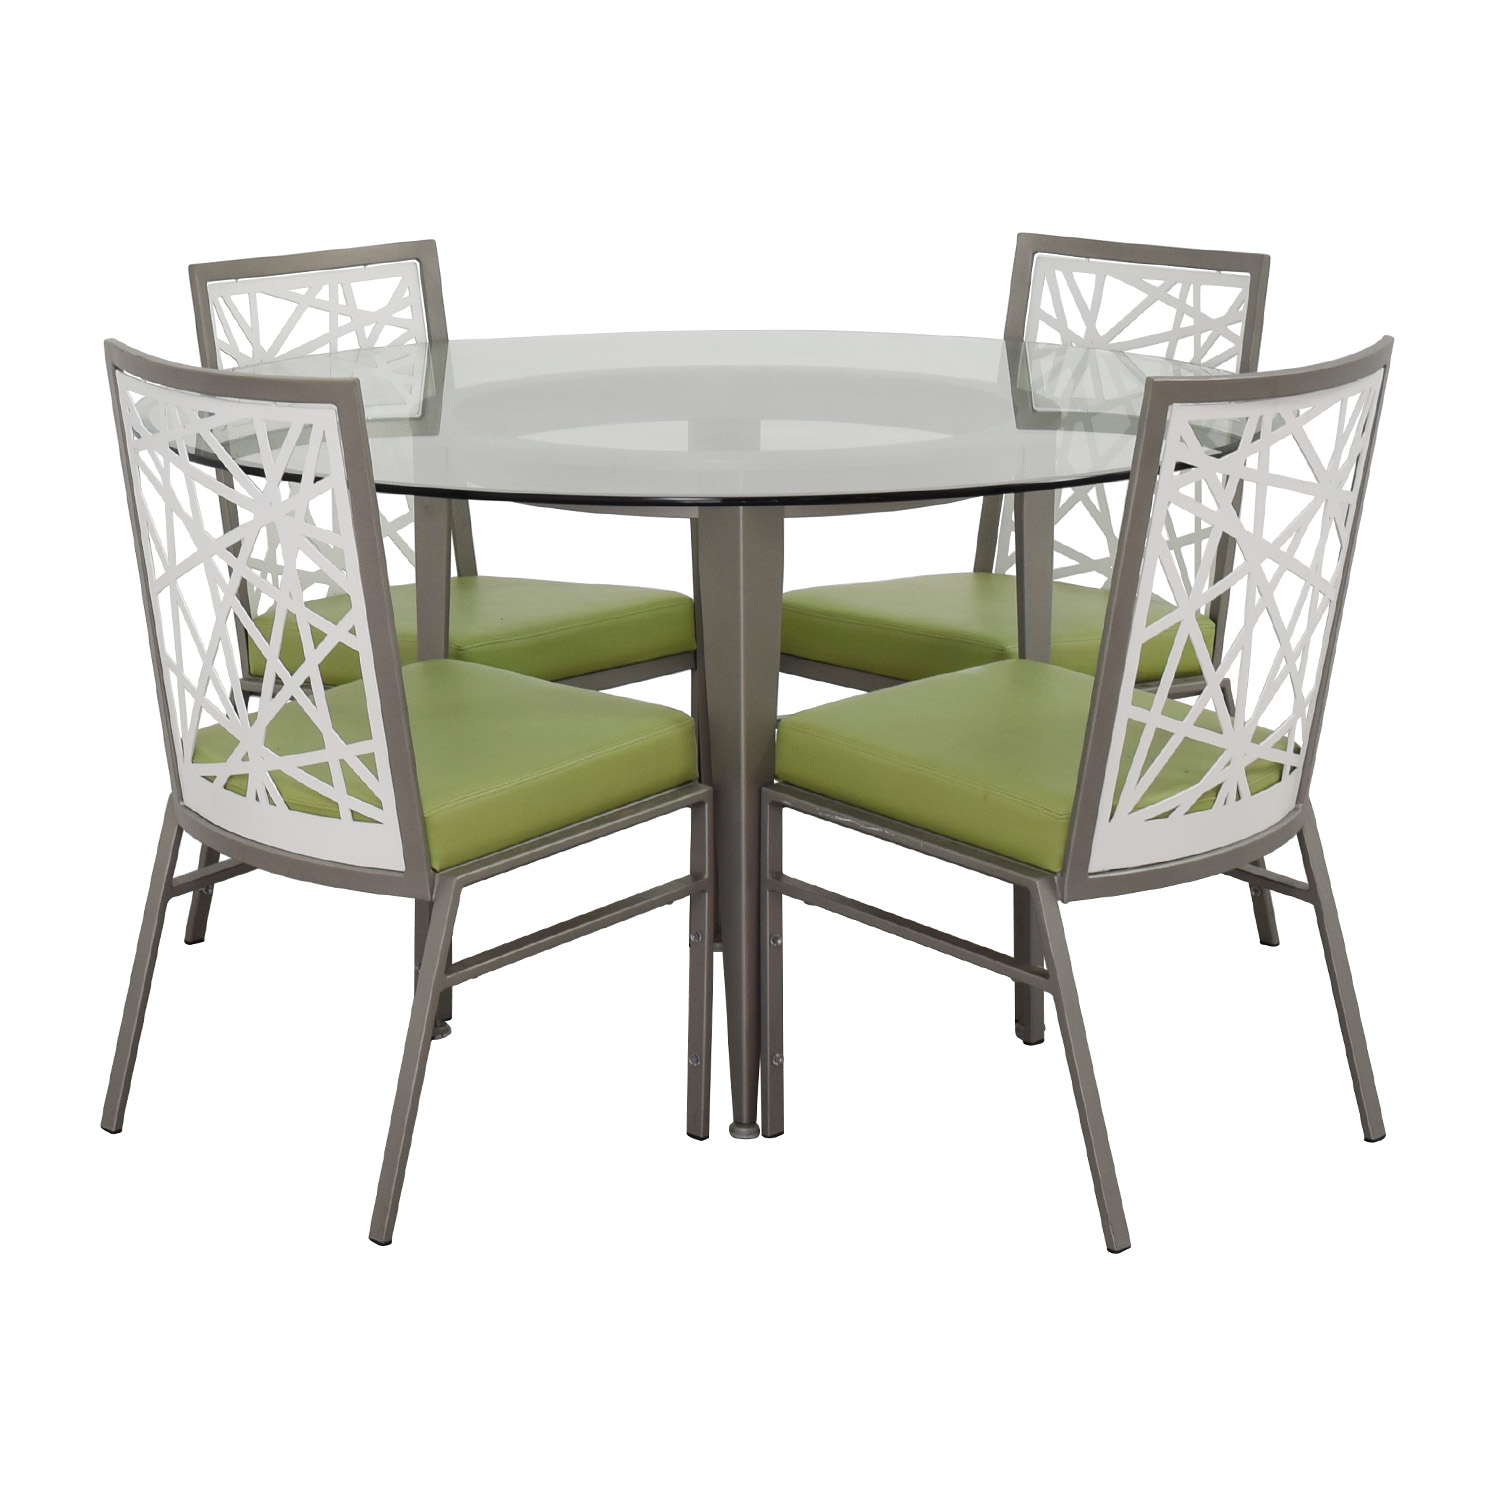 modern green dining chairs sofa chair covers nz 90 off bif furniture silver and